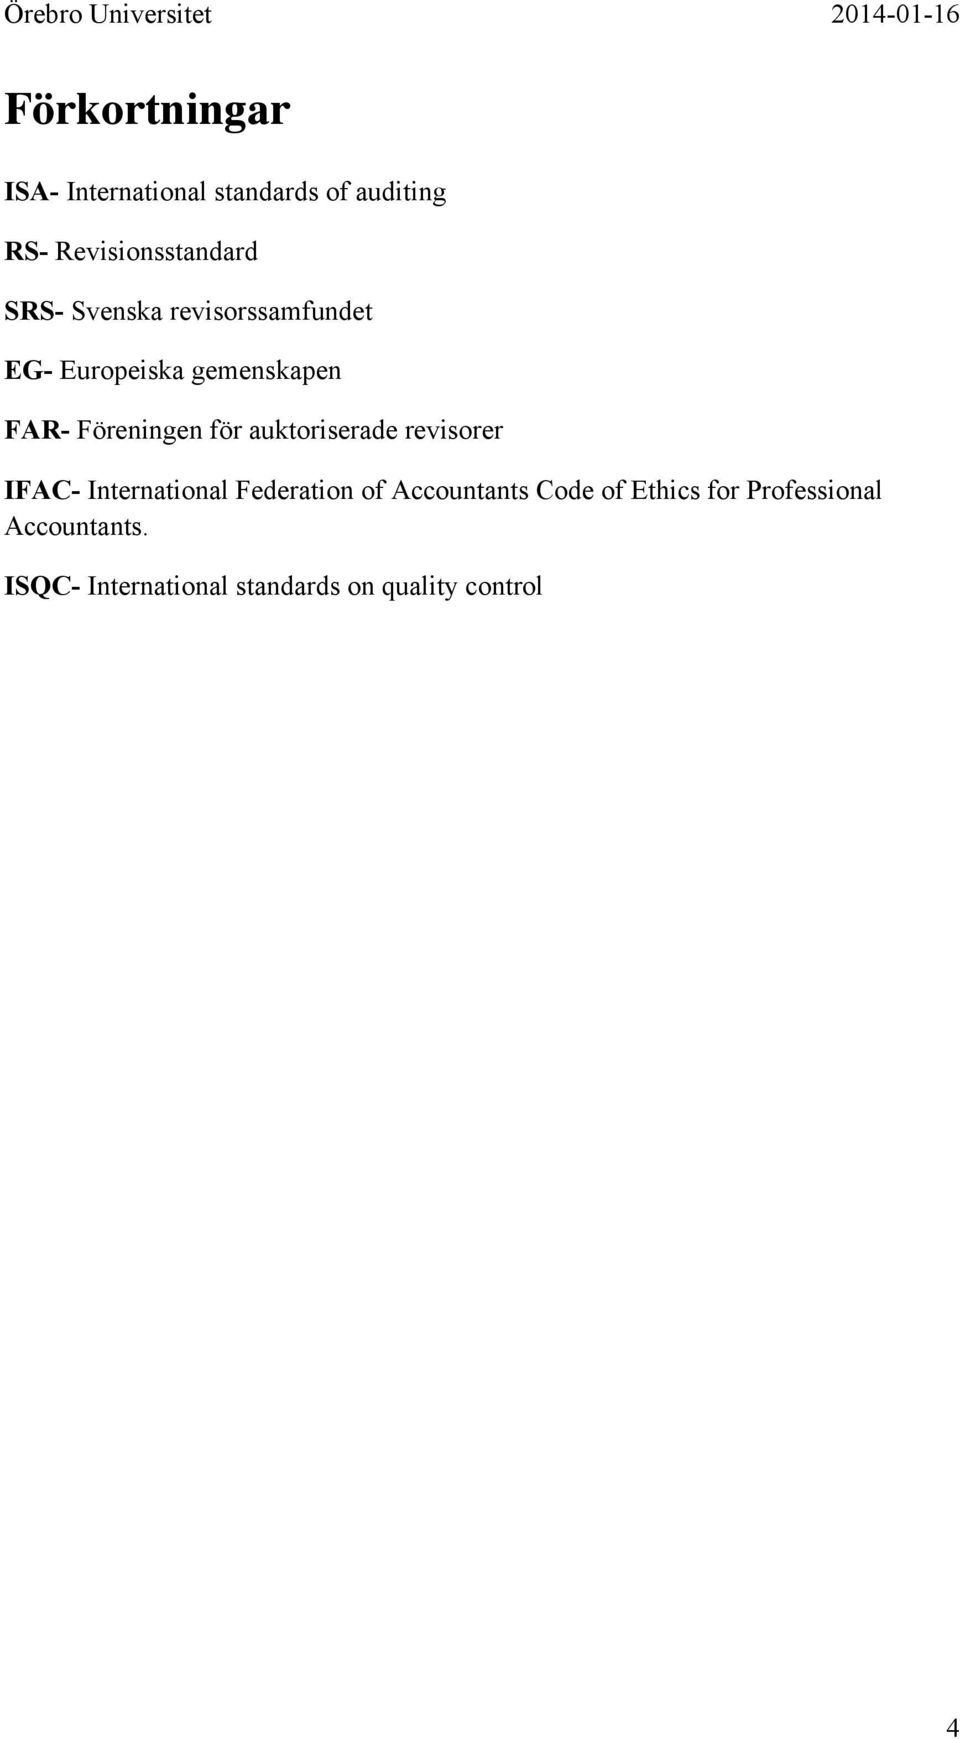 auktoriserade revisorer IFAC- International Federation of Accountants Code of